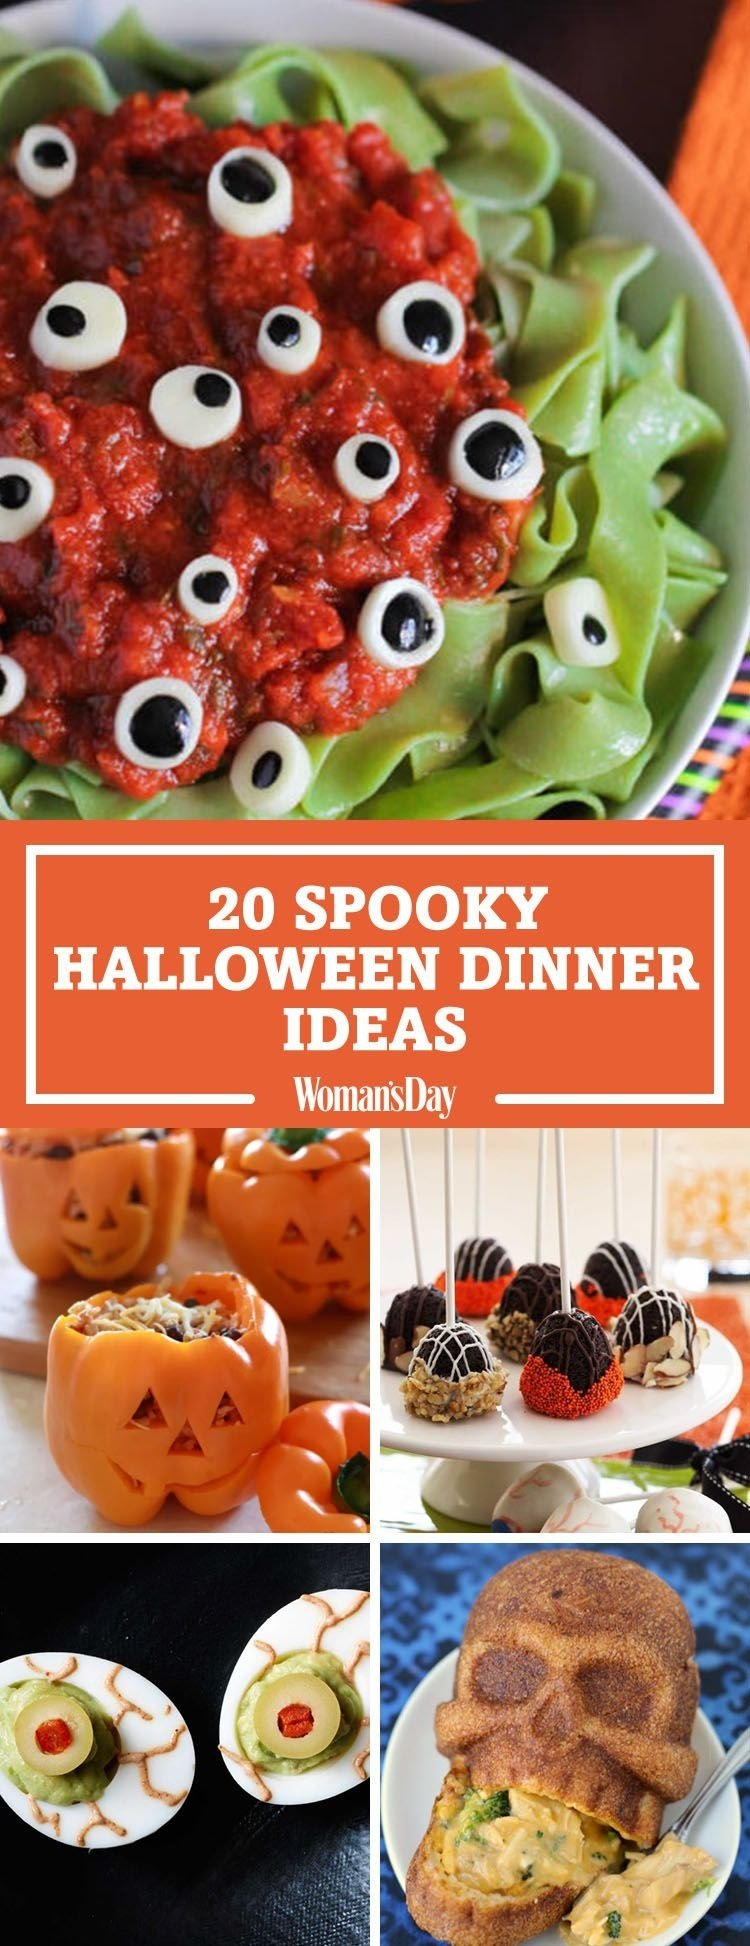 10 Lovely Halloween Dinner Ideas For Adults 25 spooky halloween dinner ideas best recipes for halloween dishes 2021